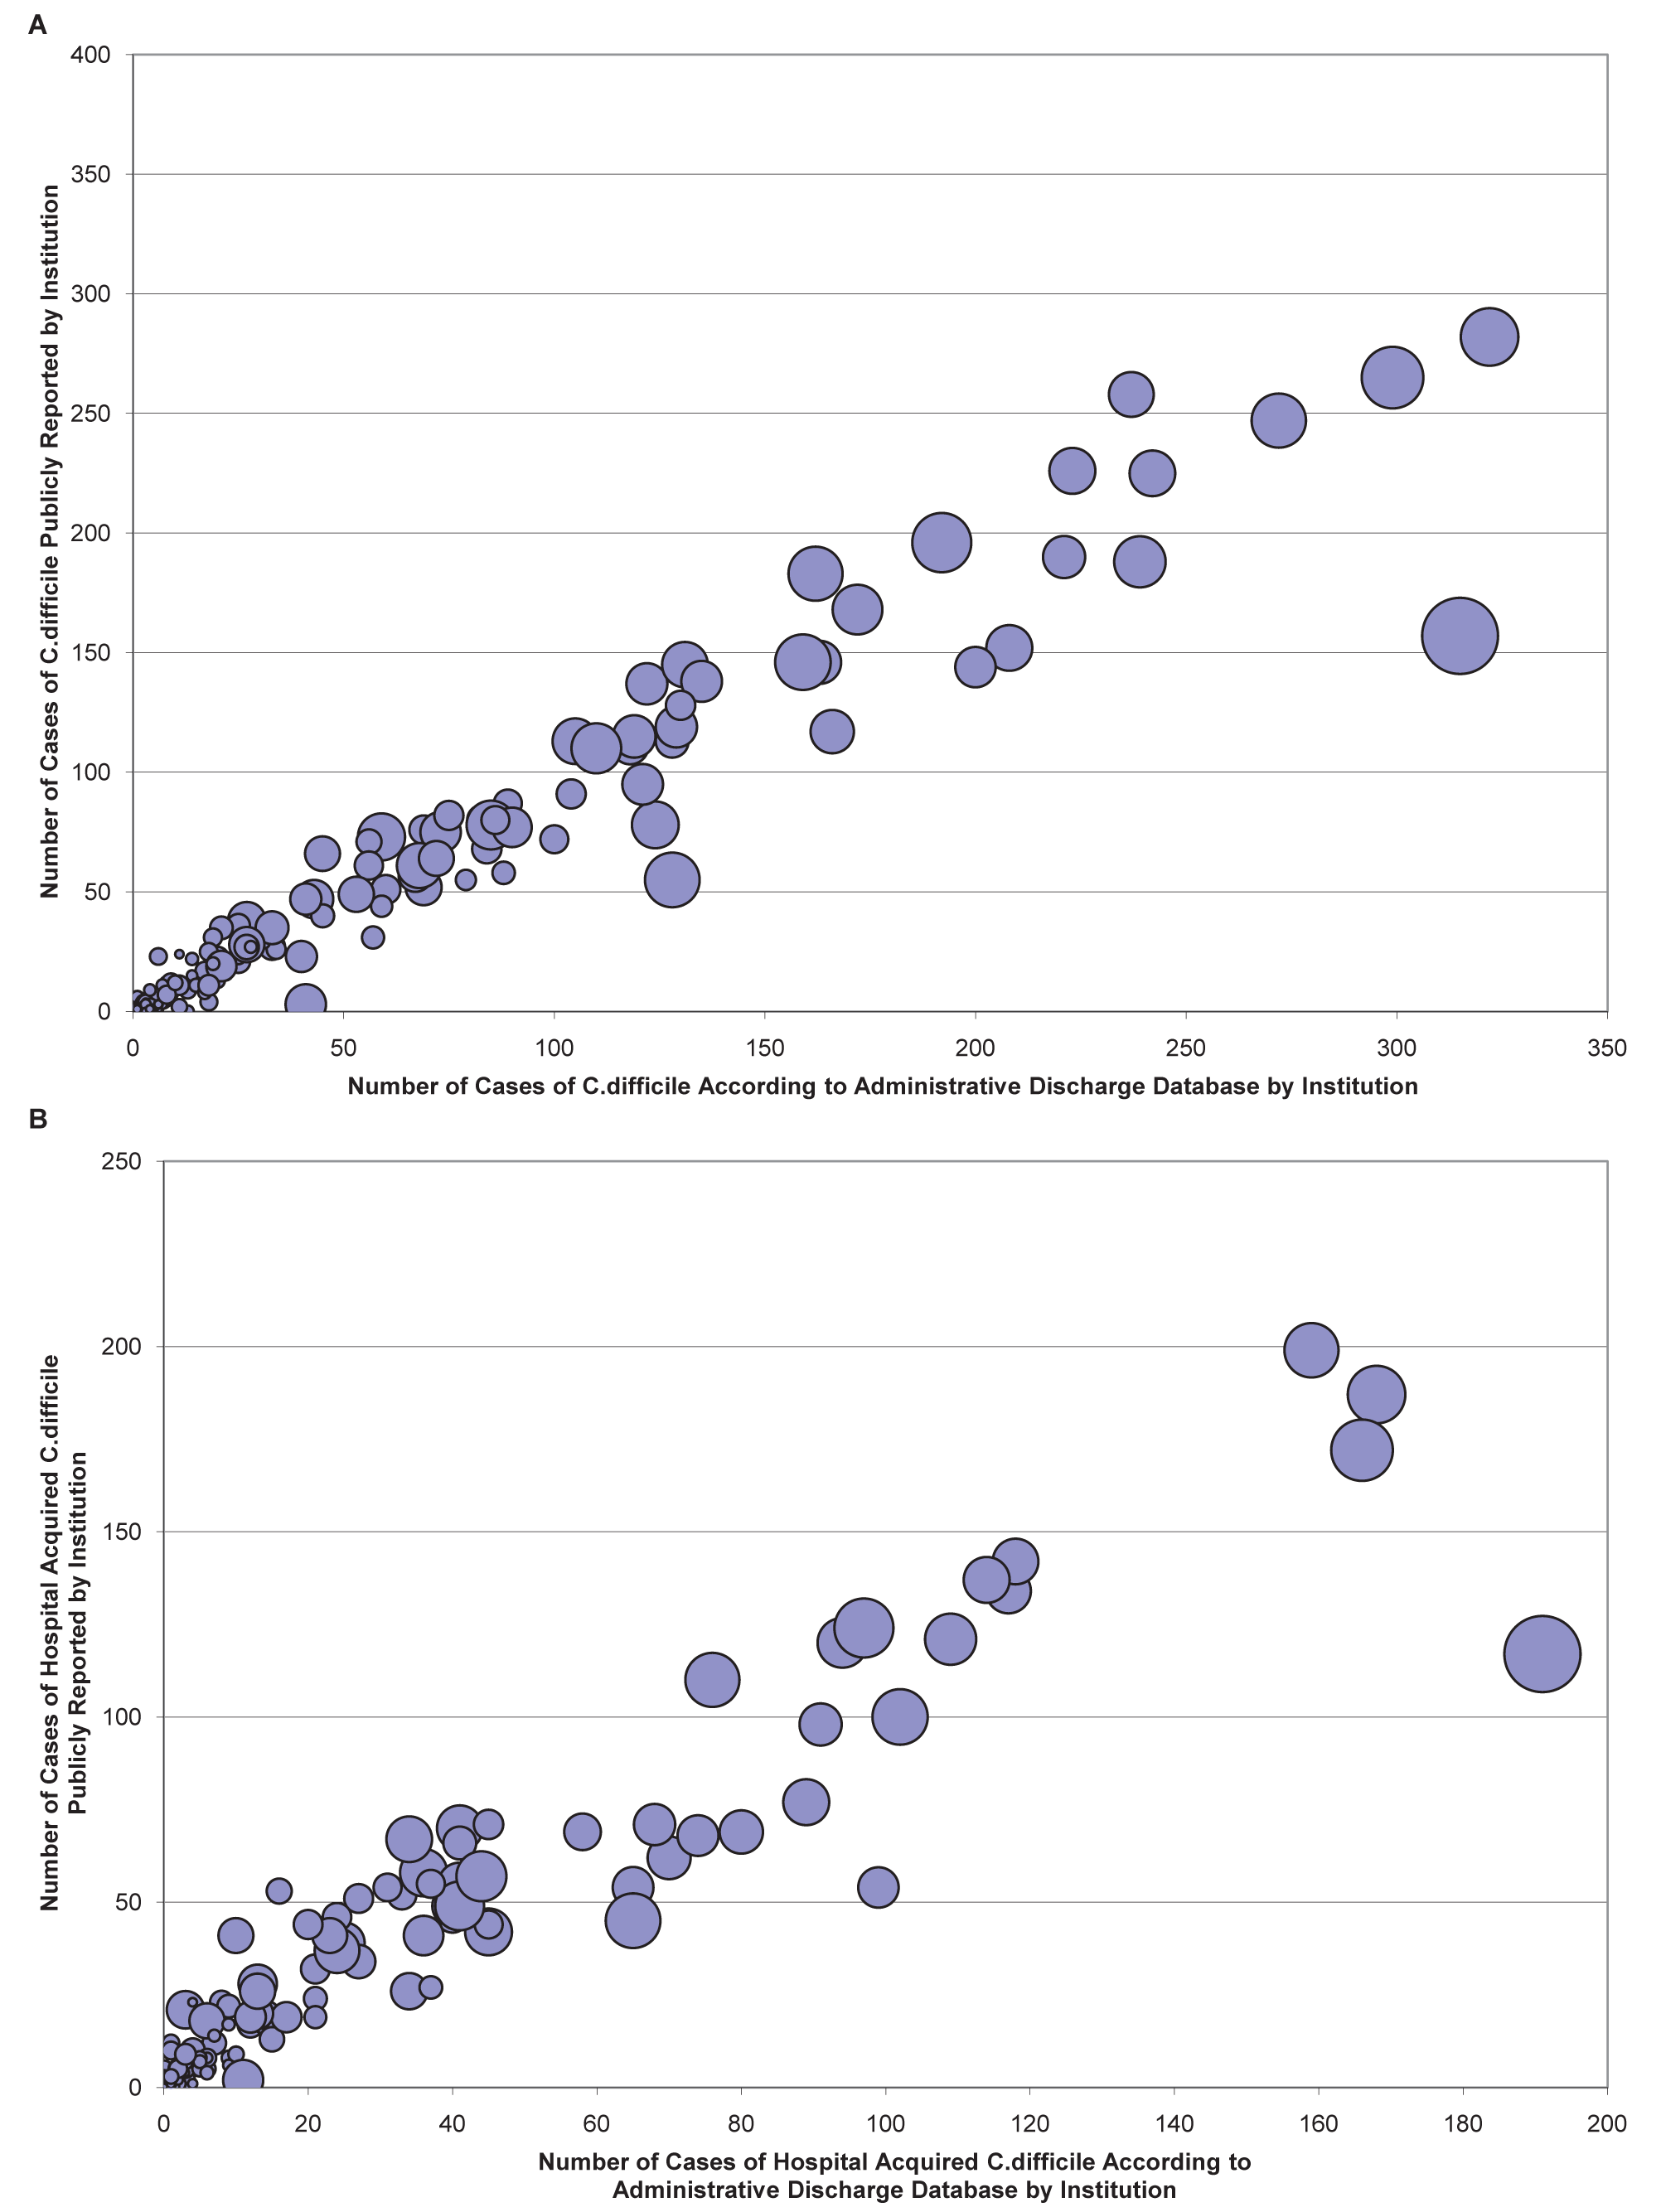 Correlation of aggregate hospital <i>C. difficile</i> cases in administrative datasets and public reporting statistics.